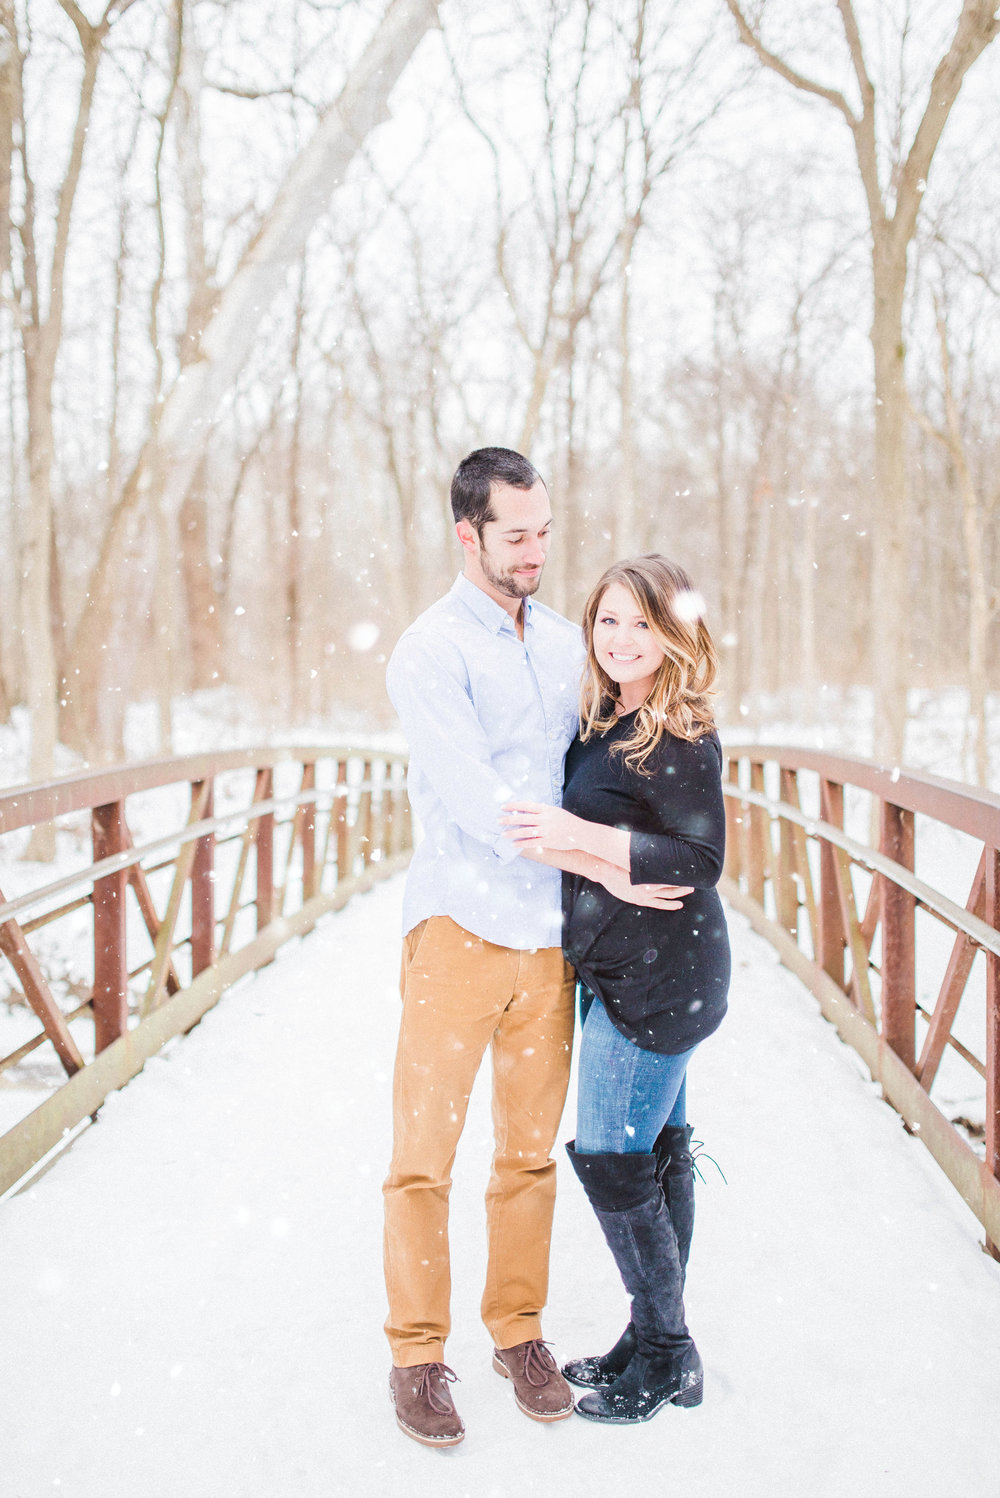 Fine Art Indianapolis Destination Wedding Photographer - Winter Snow Engagement Session